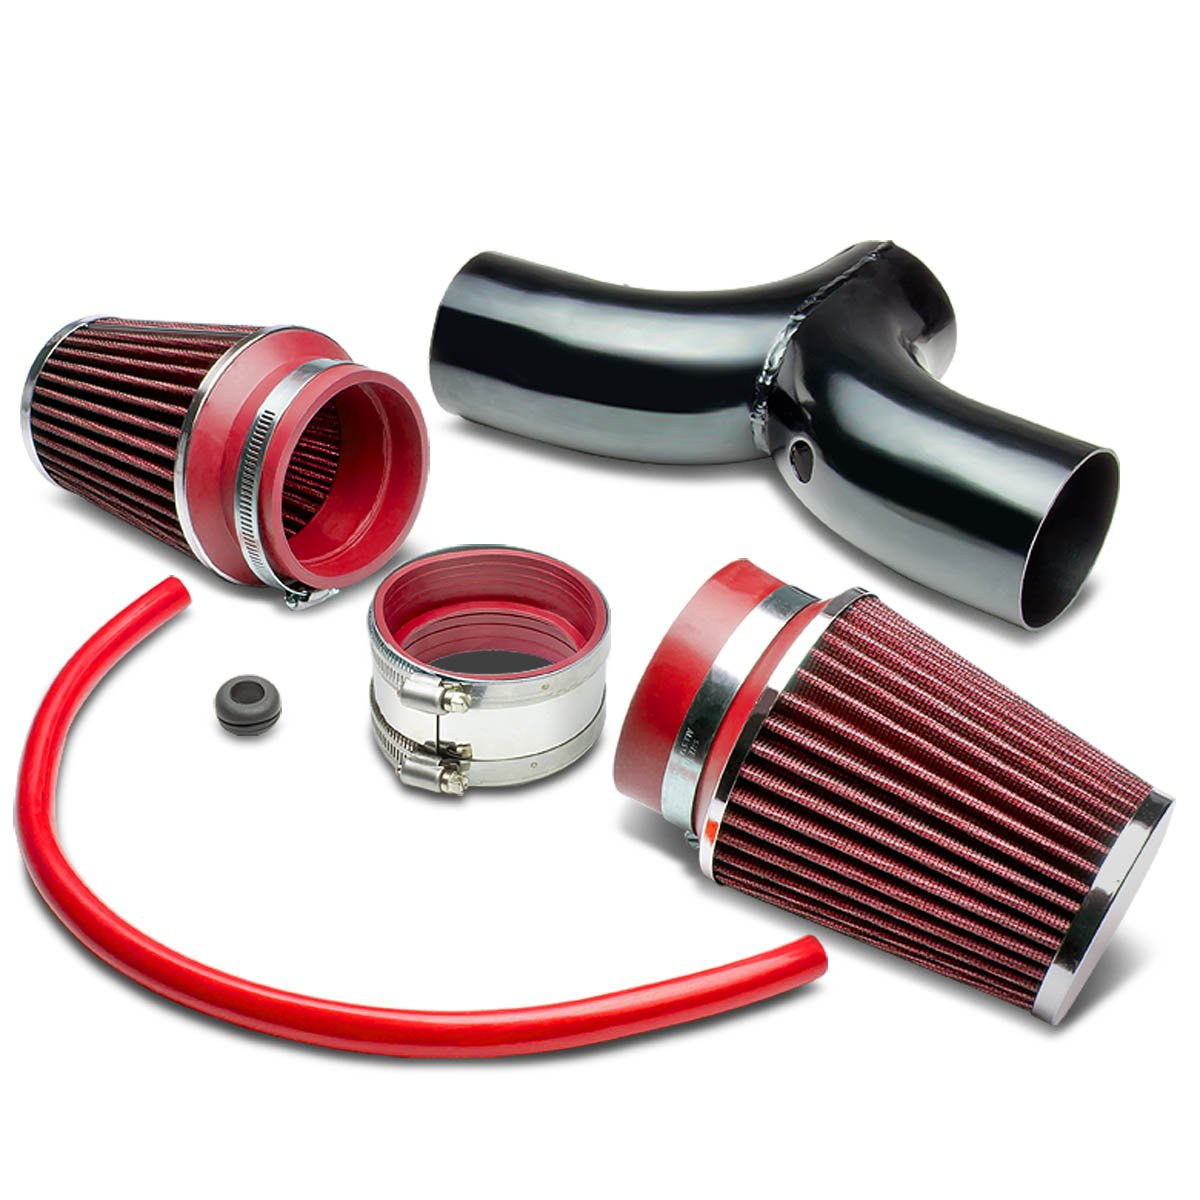 For Dodge SUV/Truck Cold Air Intake Pipe Kit Set (Black Pipe+Red Filter)